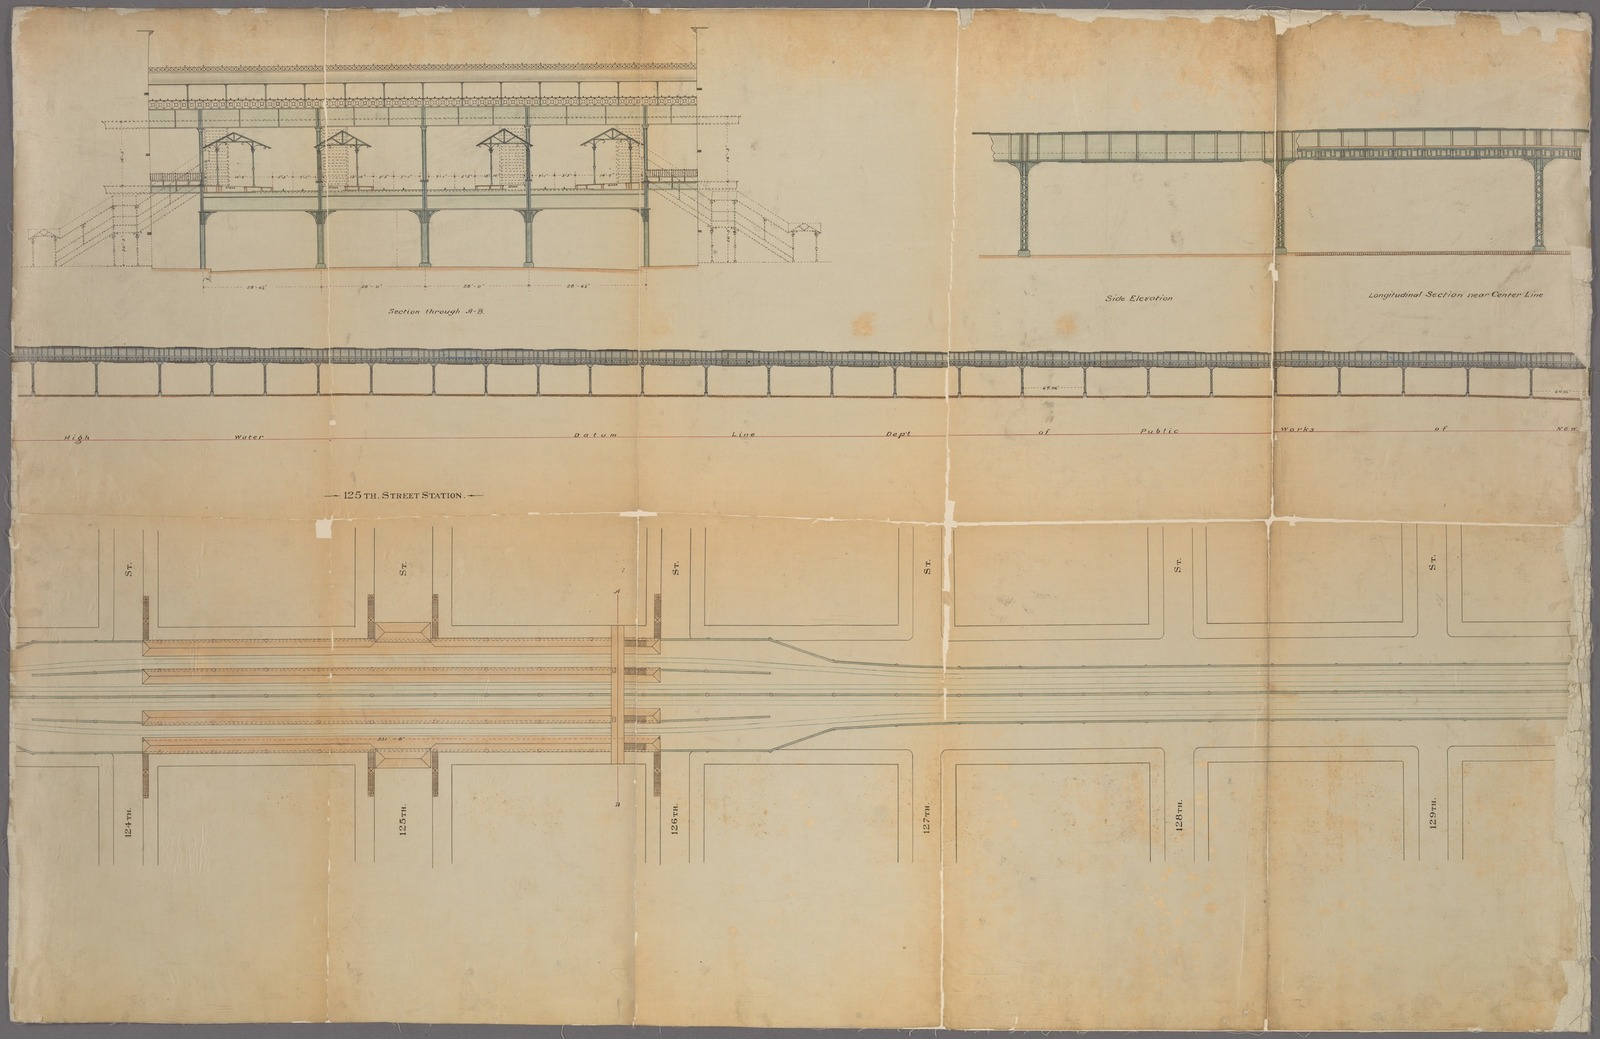 Plans for the improvement of Park Avenue, above 106th street in the City of New York. Exhibiting by map, profile, and cross sections, the work of alterations & changes to be made in the structure of the N. Y. & Harlem Railroad, on Park Avenue and 106th Street and the Harlem River in the City of New York.